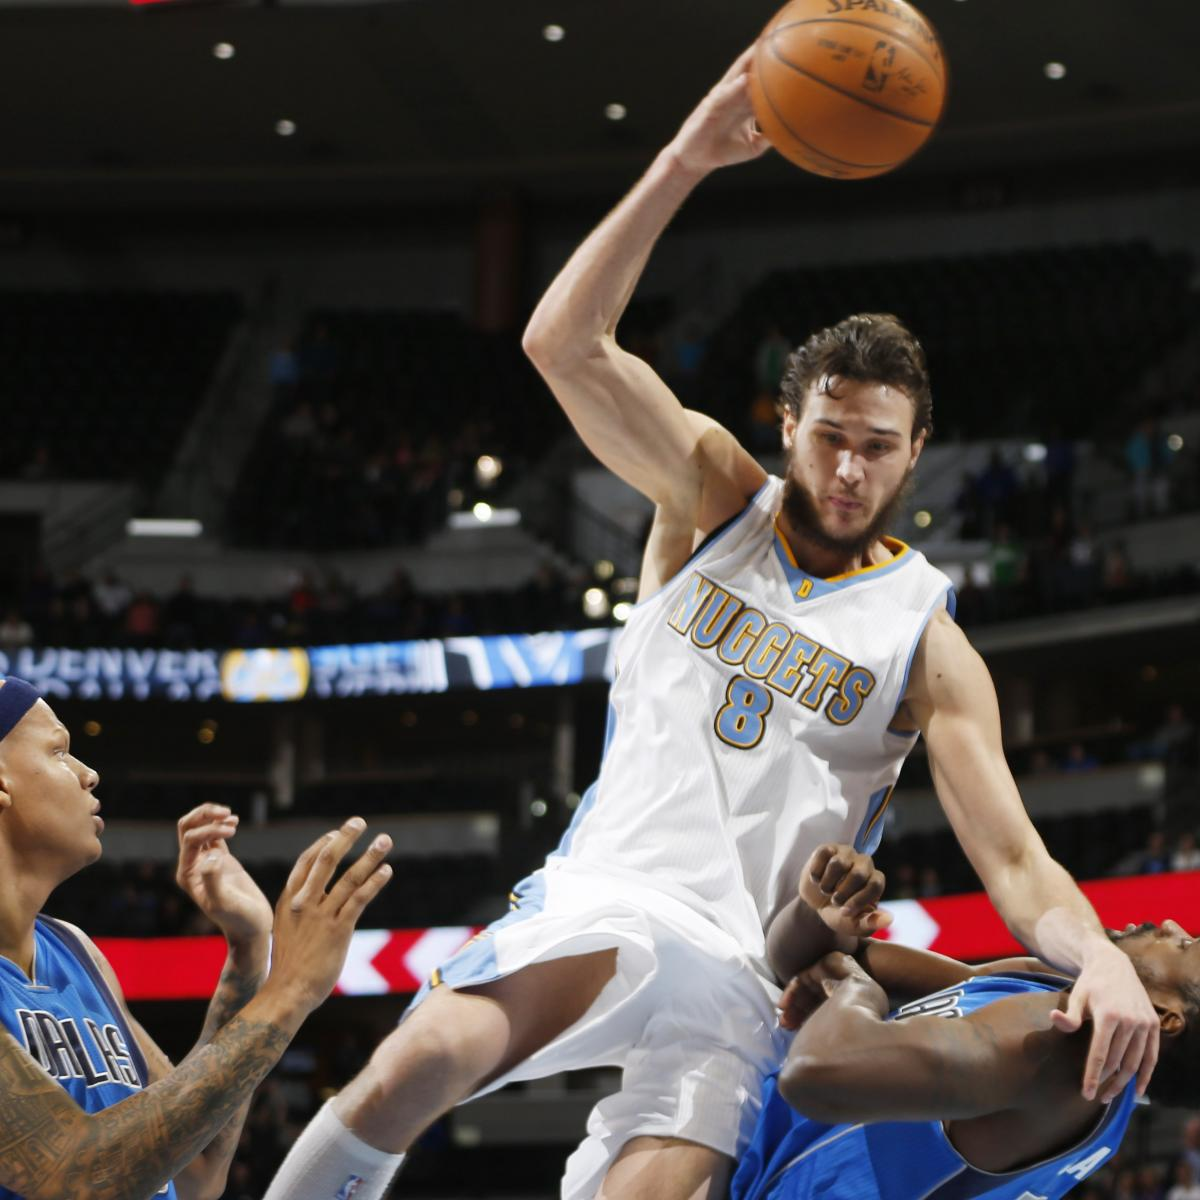 Dallas Mavericks Vs. Denver Nuggets 4/10/15: Video